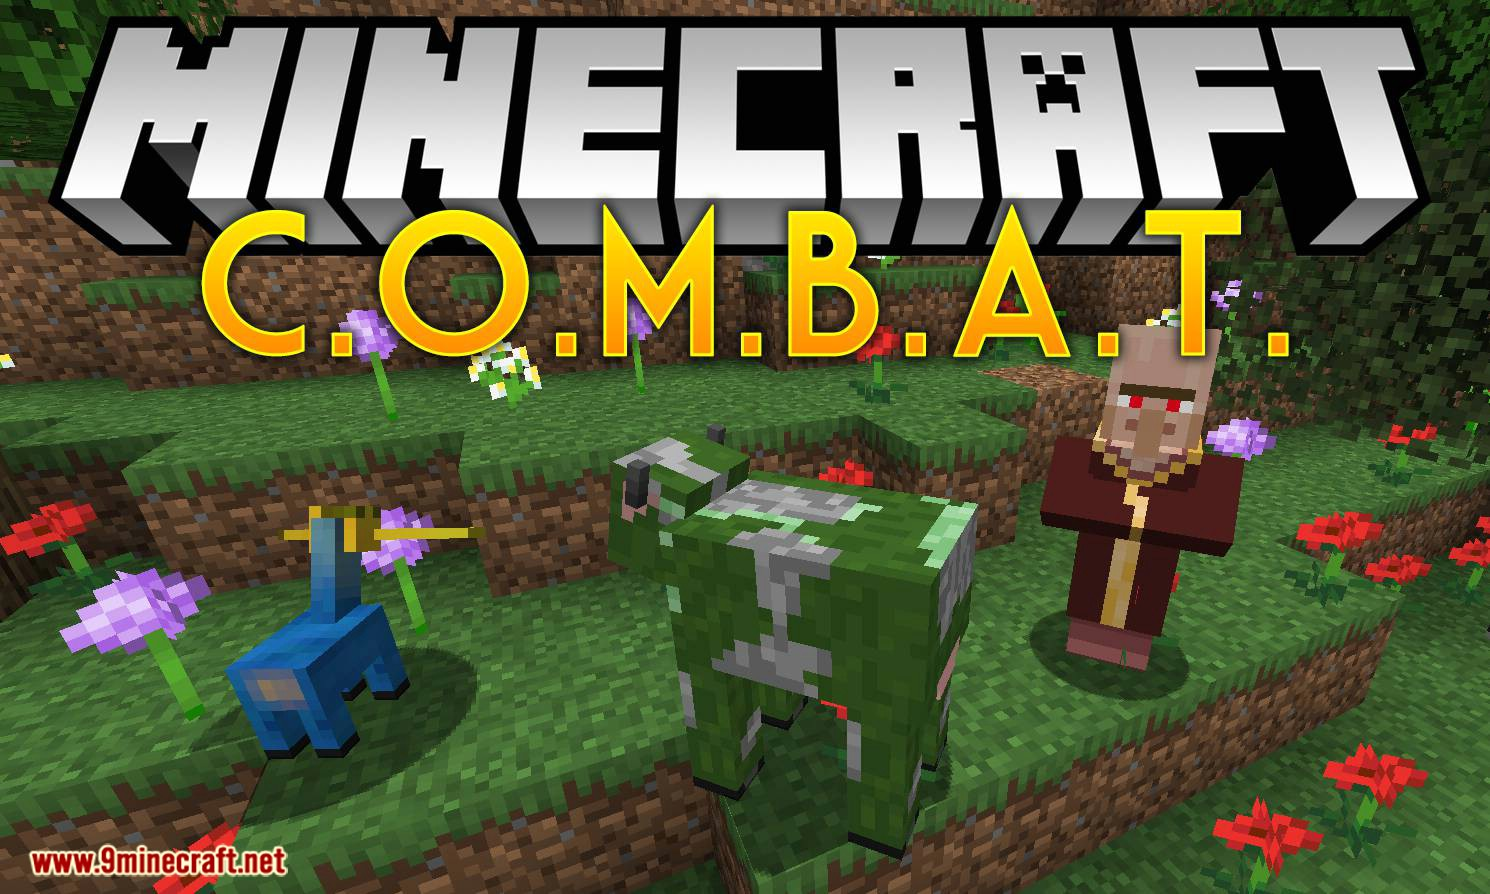 C.O.M.B.A.T mod for minecraft logo